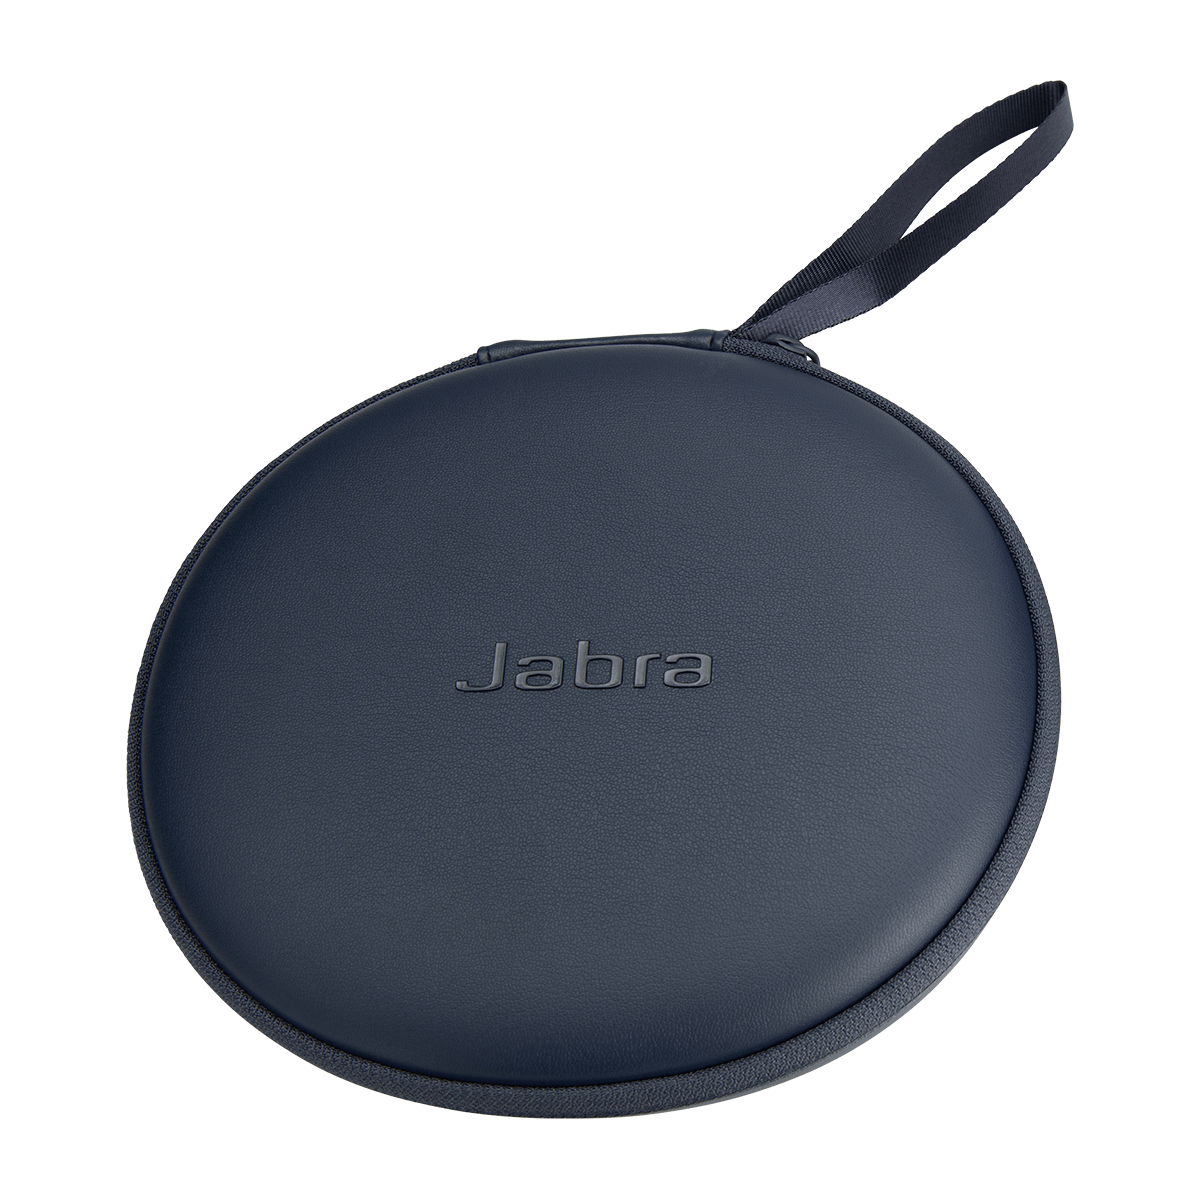 Carry Case in Navy color for Jabra Elite 85h Wireless Headphones